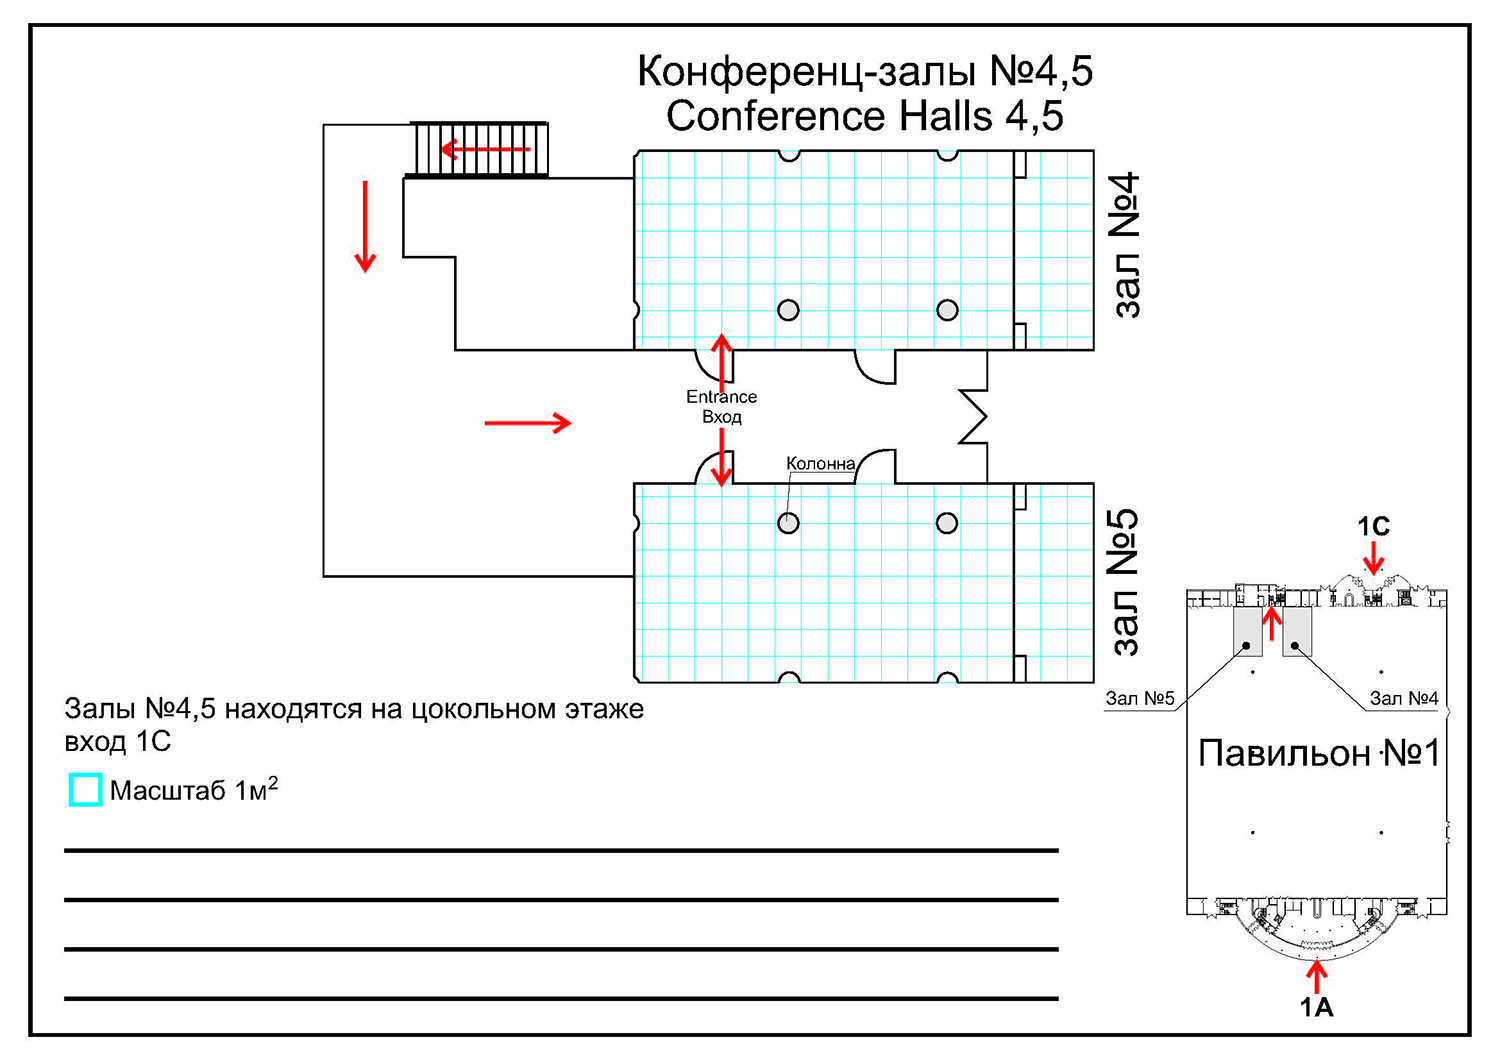 Conference-Hall-4,5